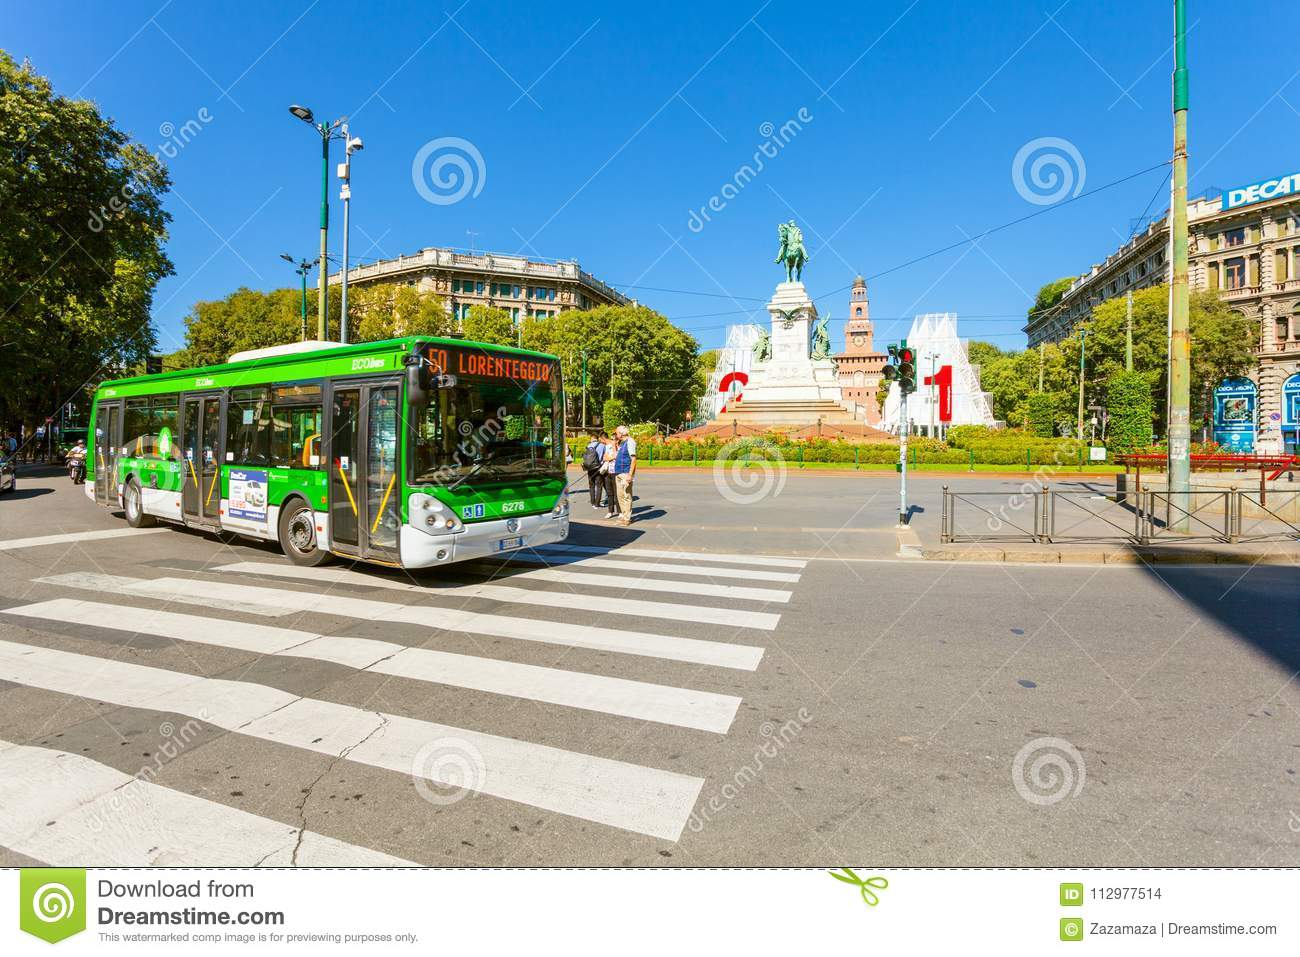 MILAN, ITALY - September 07, 2016: The crosswalk and bus are near metro station Cairoli which is located on the Piazza